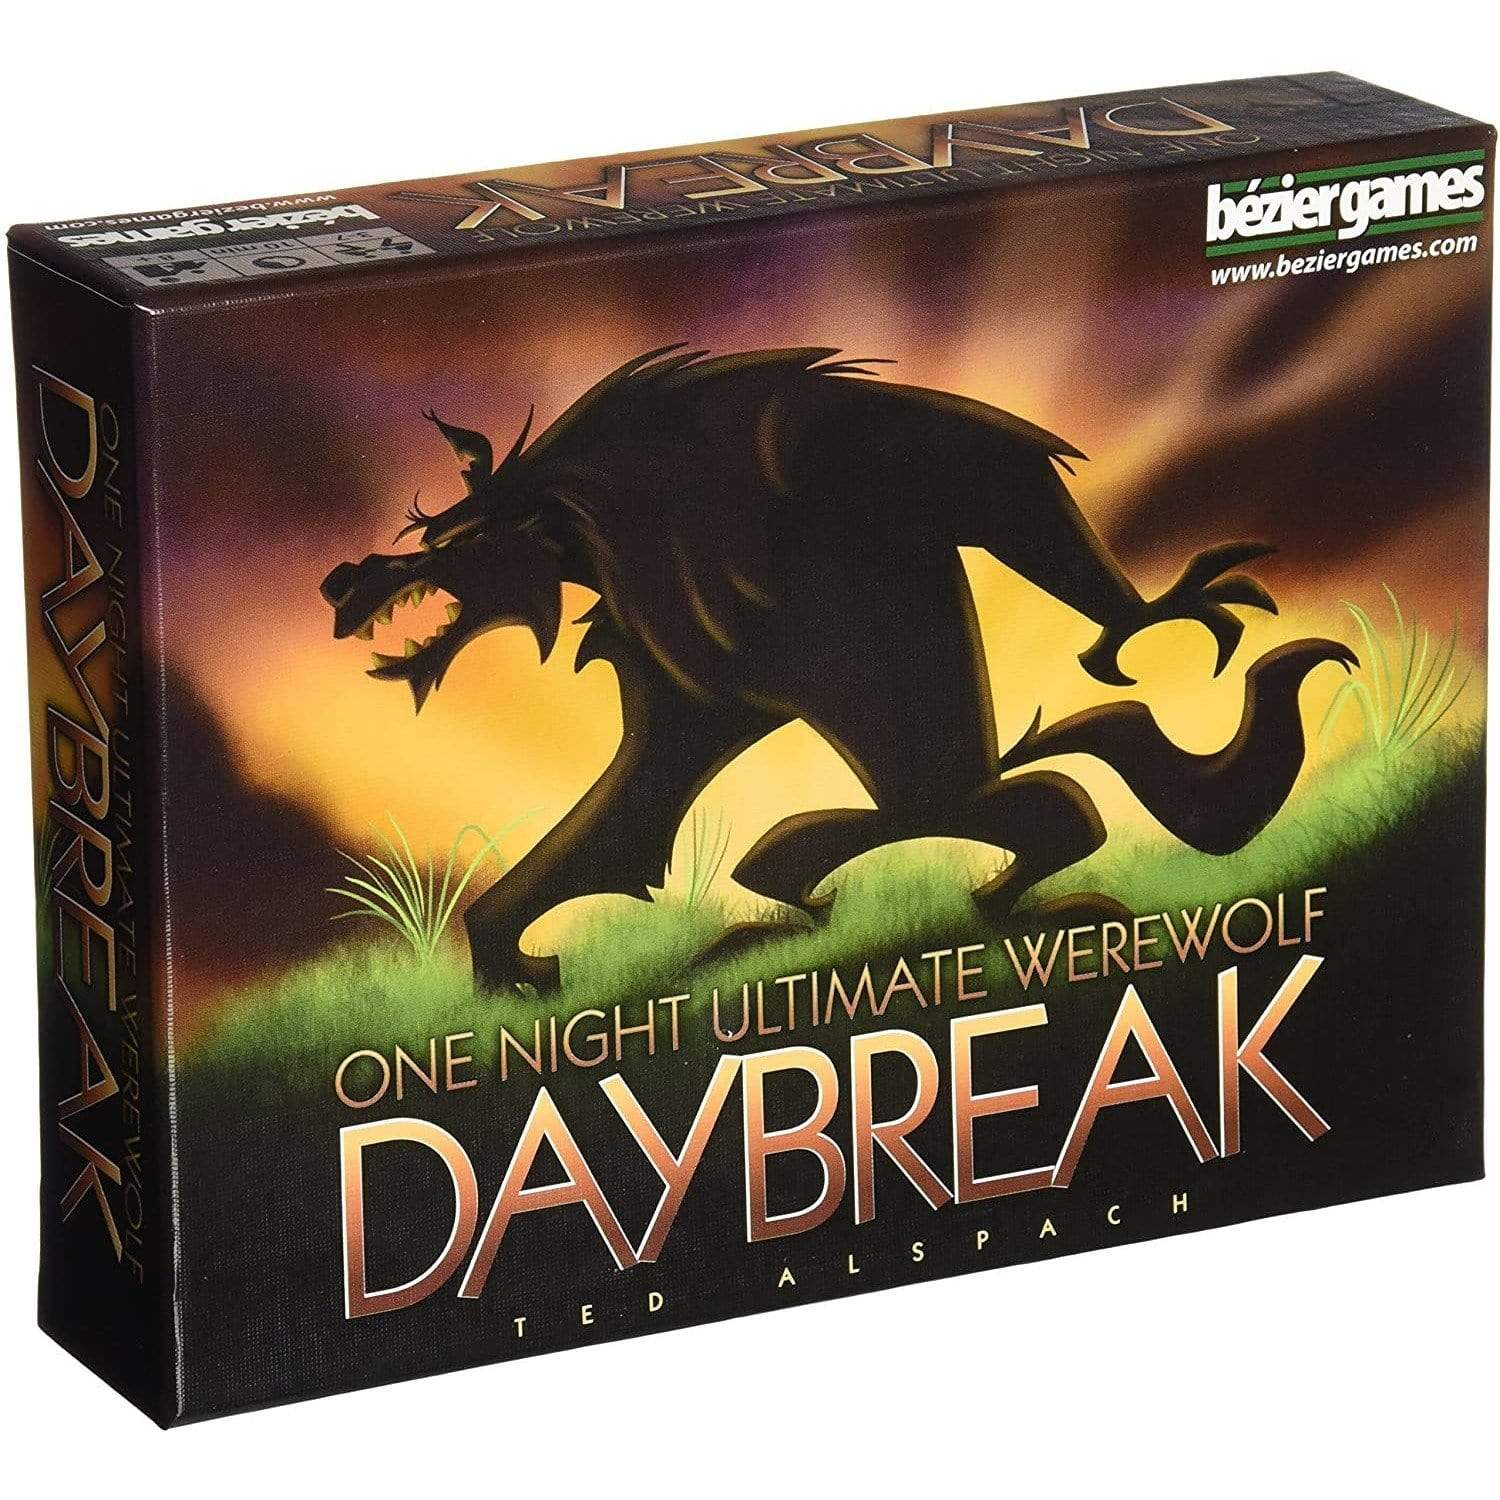 One Night Ultimate Werewolf Daybreak Bezier Games Board Games